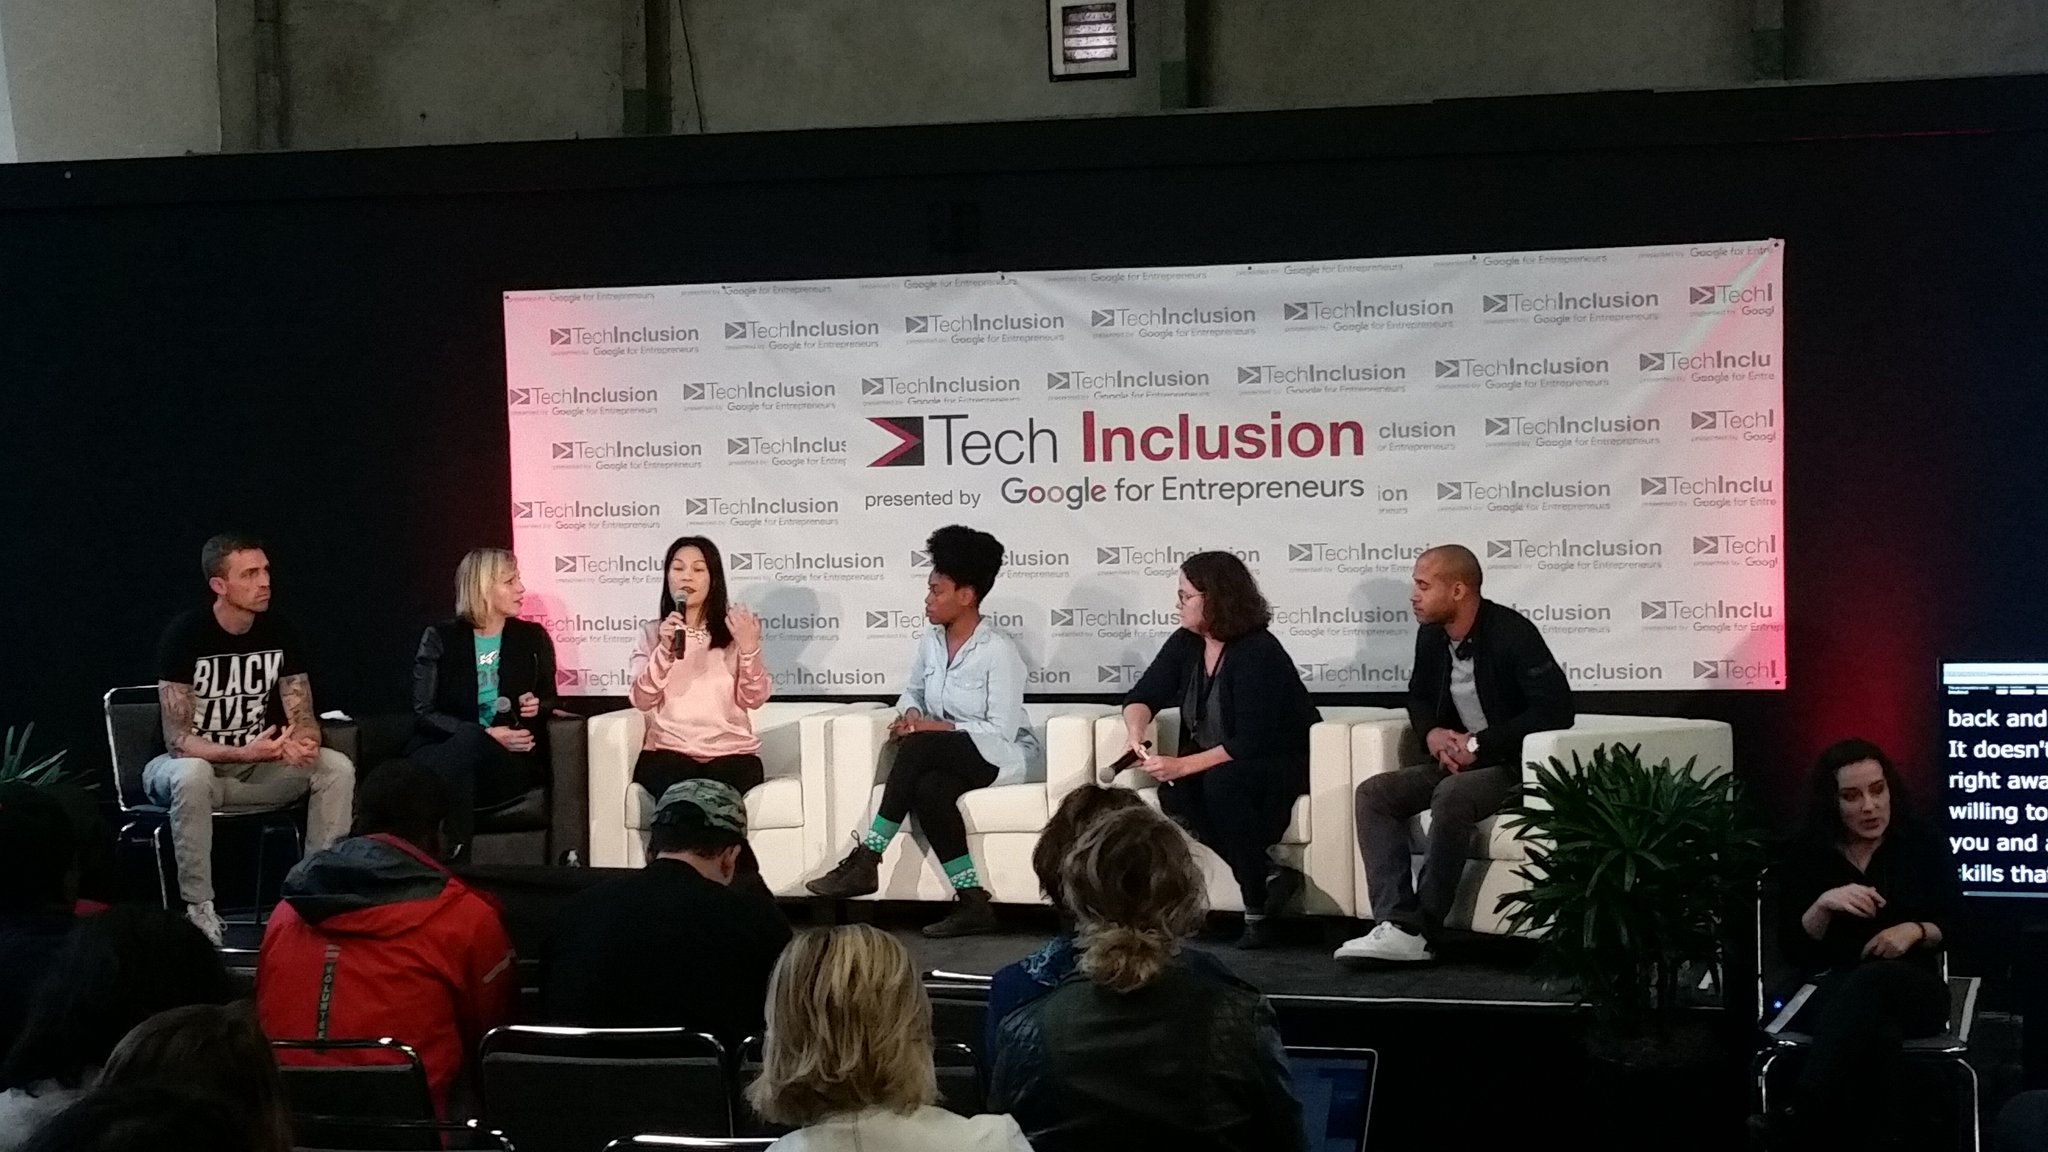 .@hadiyahdotme and @mstinalee speaking on teaching diverse folks to code. #techinclusion16 https://t.co/fMjYOjKKdB